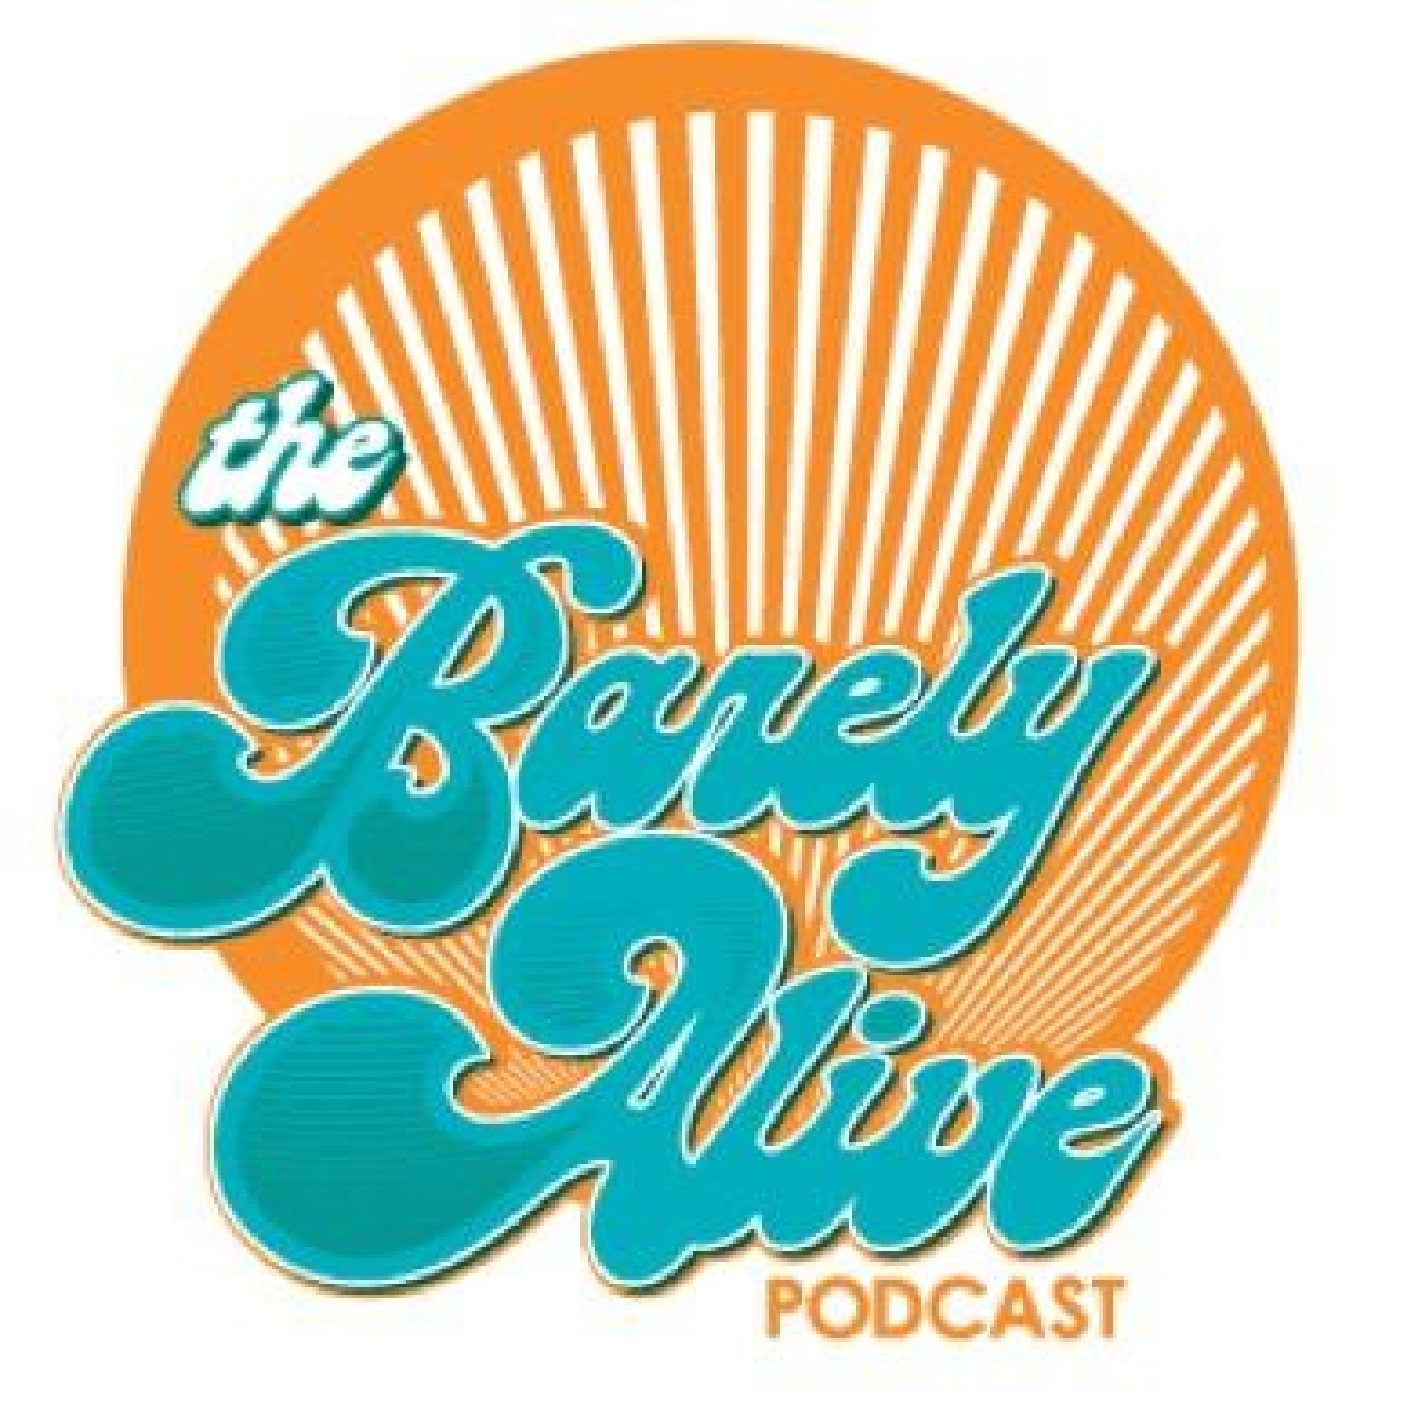 Barely Alive Podcast